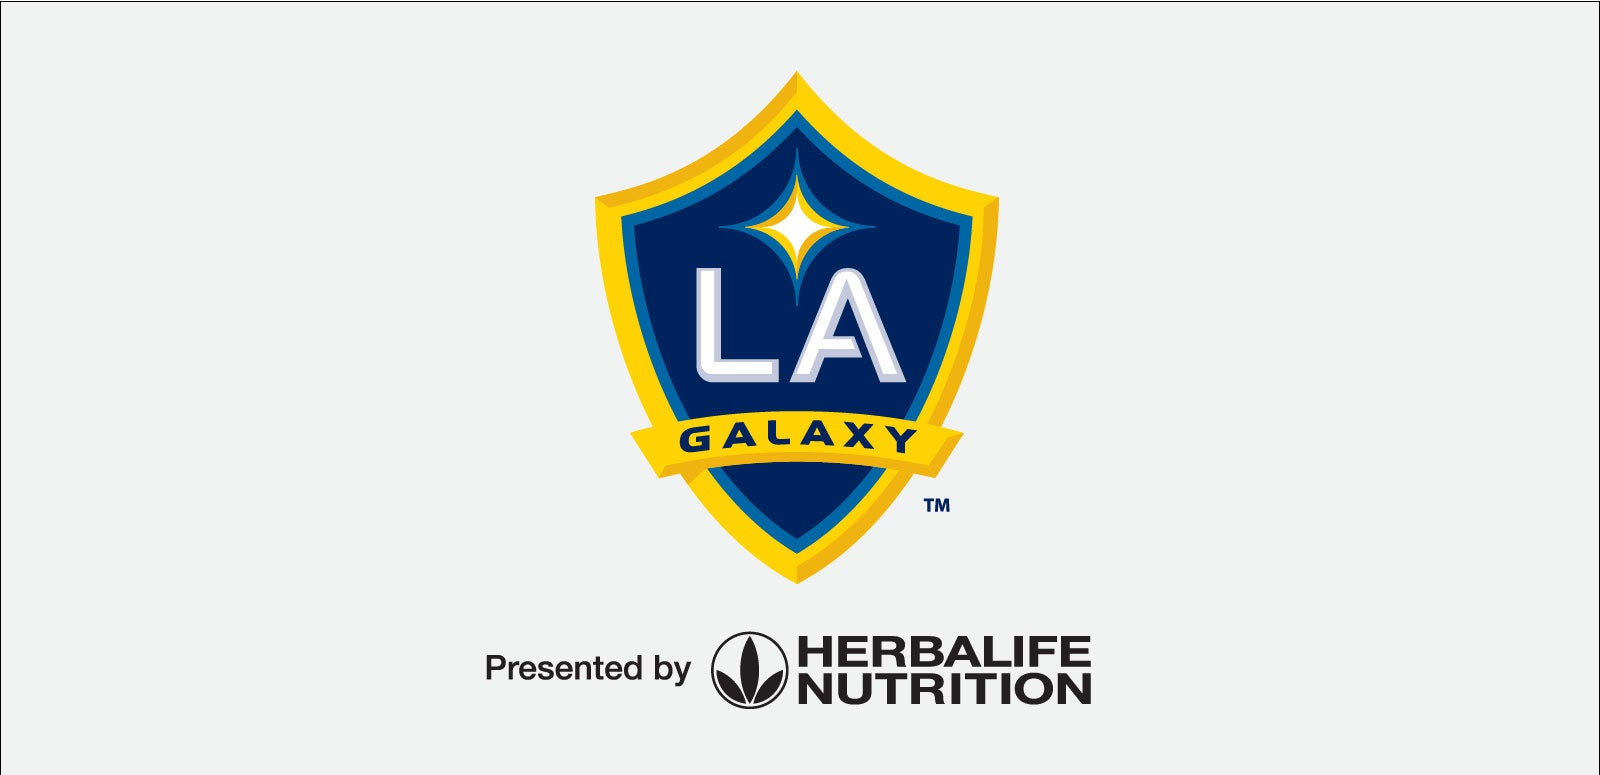 LA Galaxy vs. San Jose Earthquakes